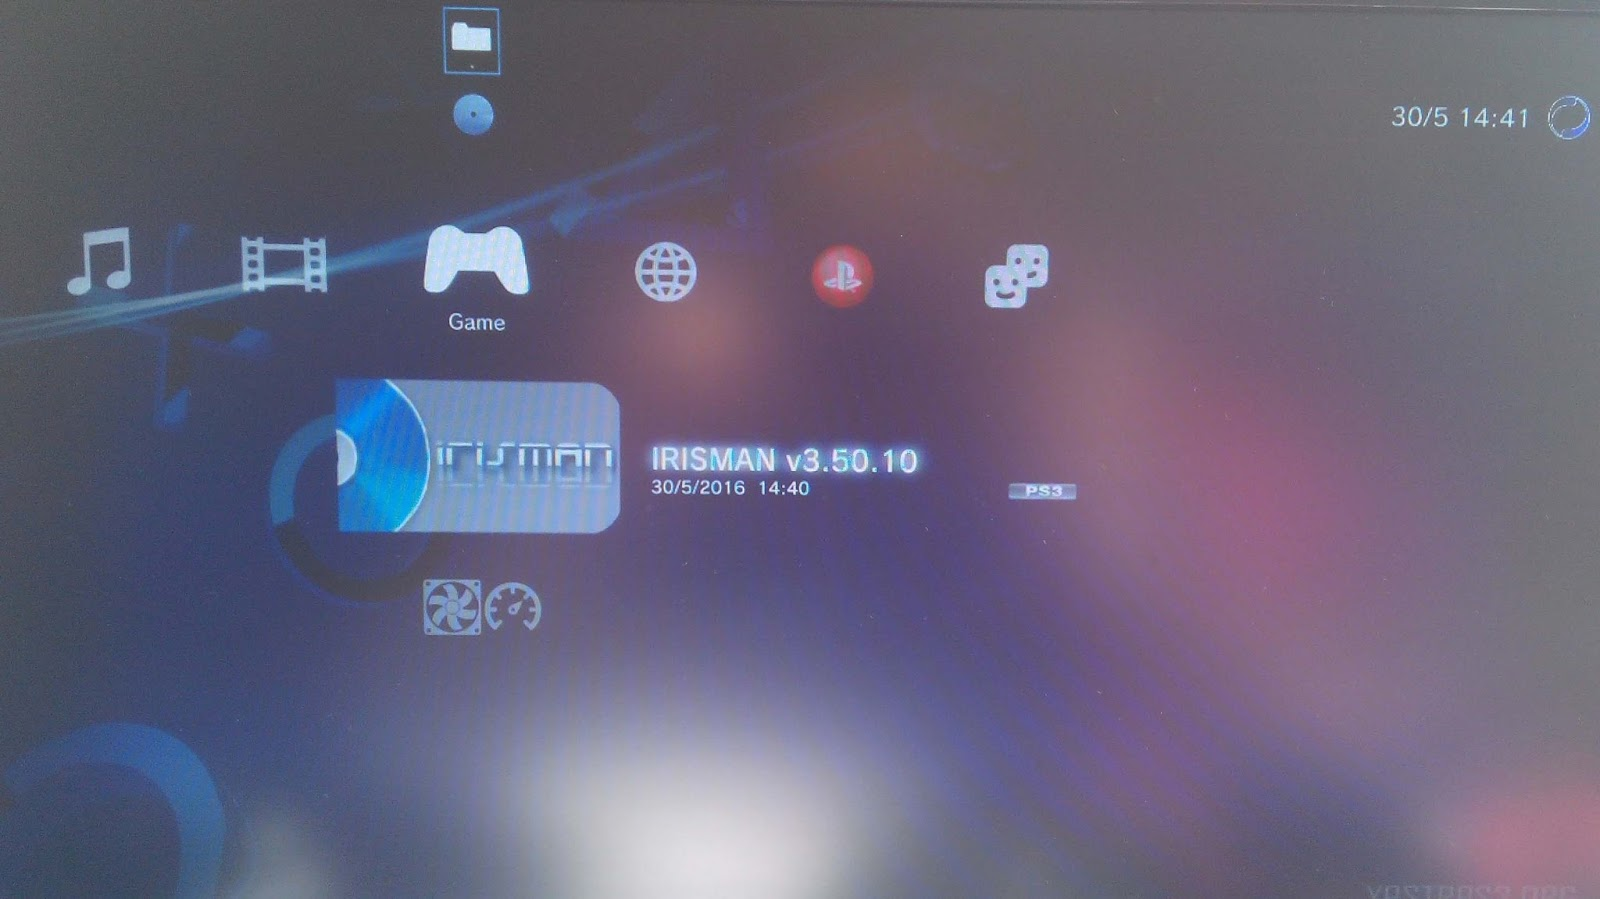 irisman 4.80 ps3